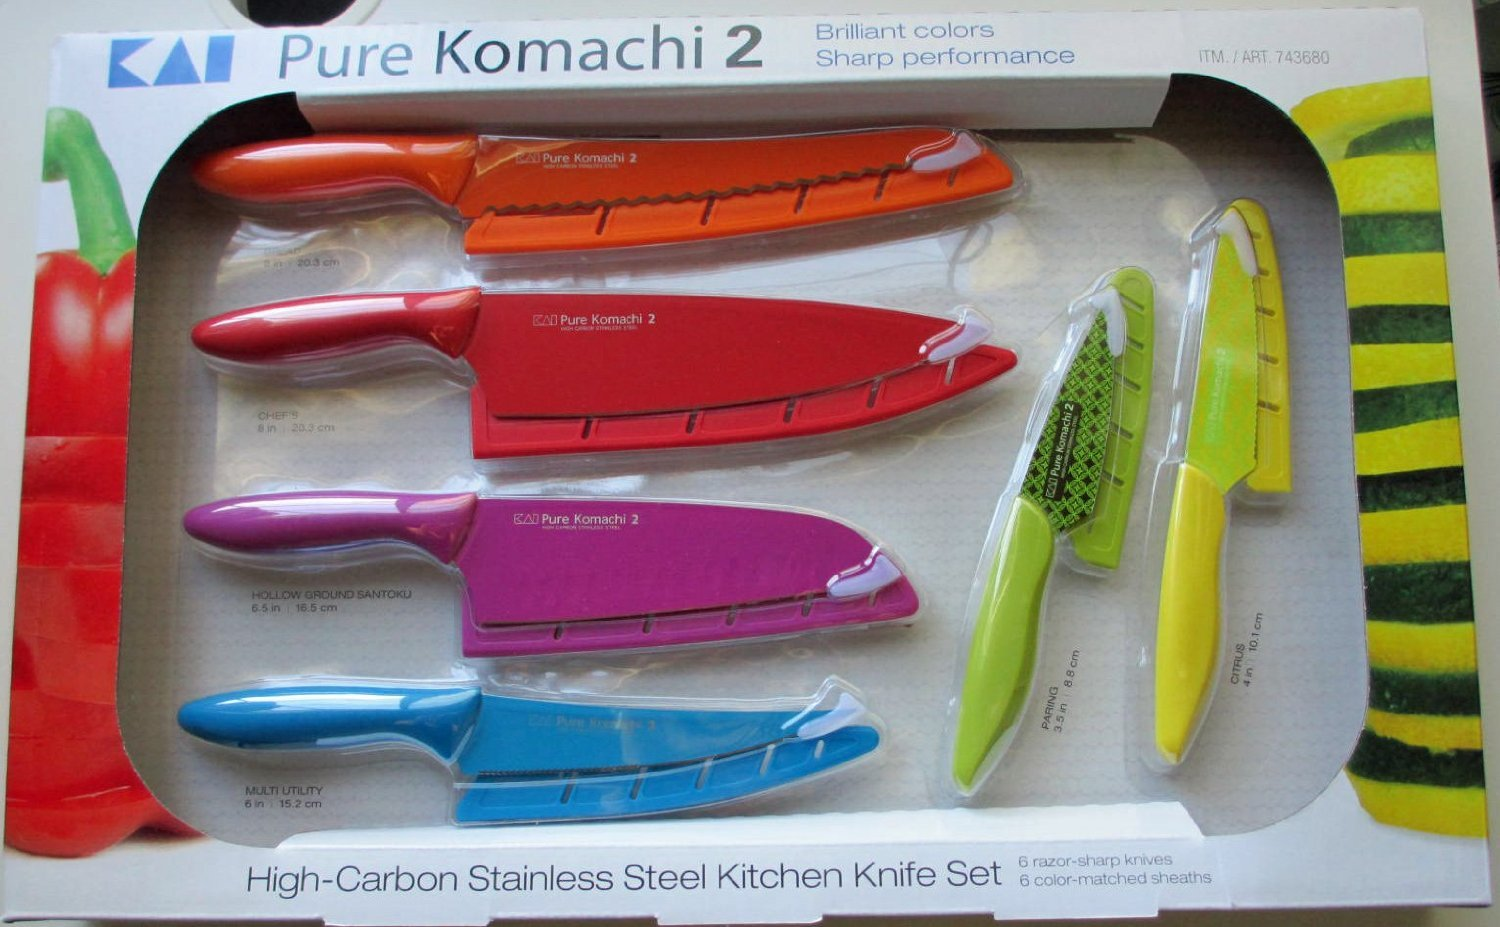 Kai Pure Komachi 2 6-Piece Knife Set 6 Stainless Steel Knives Colored Sheaths 743680